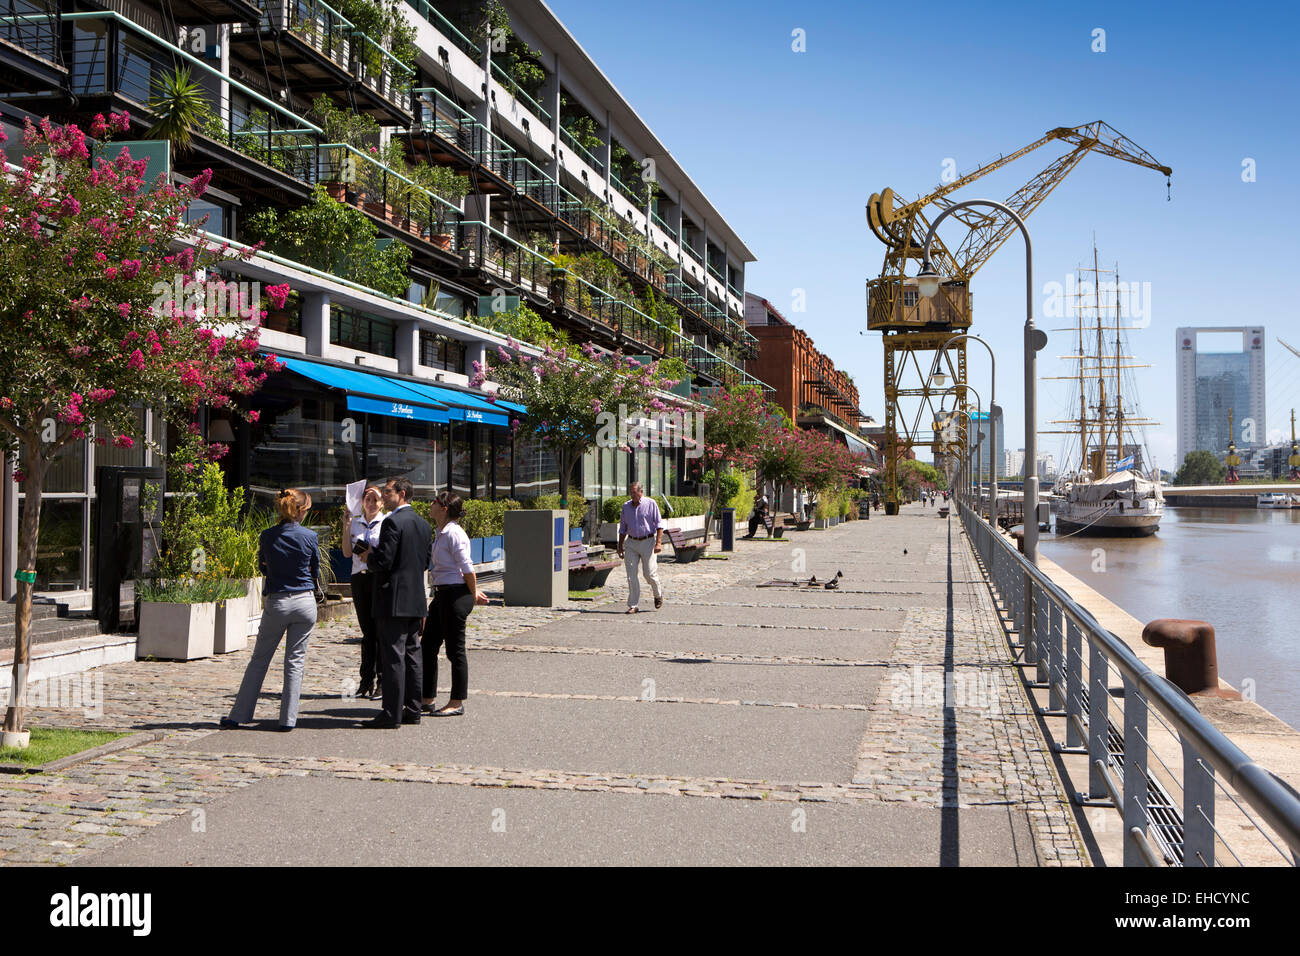 Argentina, Buenos Aires, Puerto Madero, quayside restaurants & apartments in old warehouses beside Frigate Presidente Stock Photo